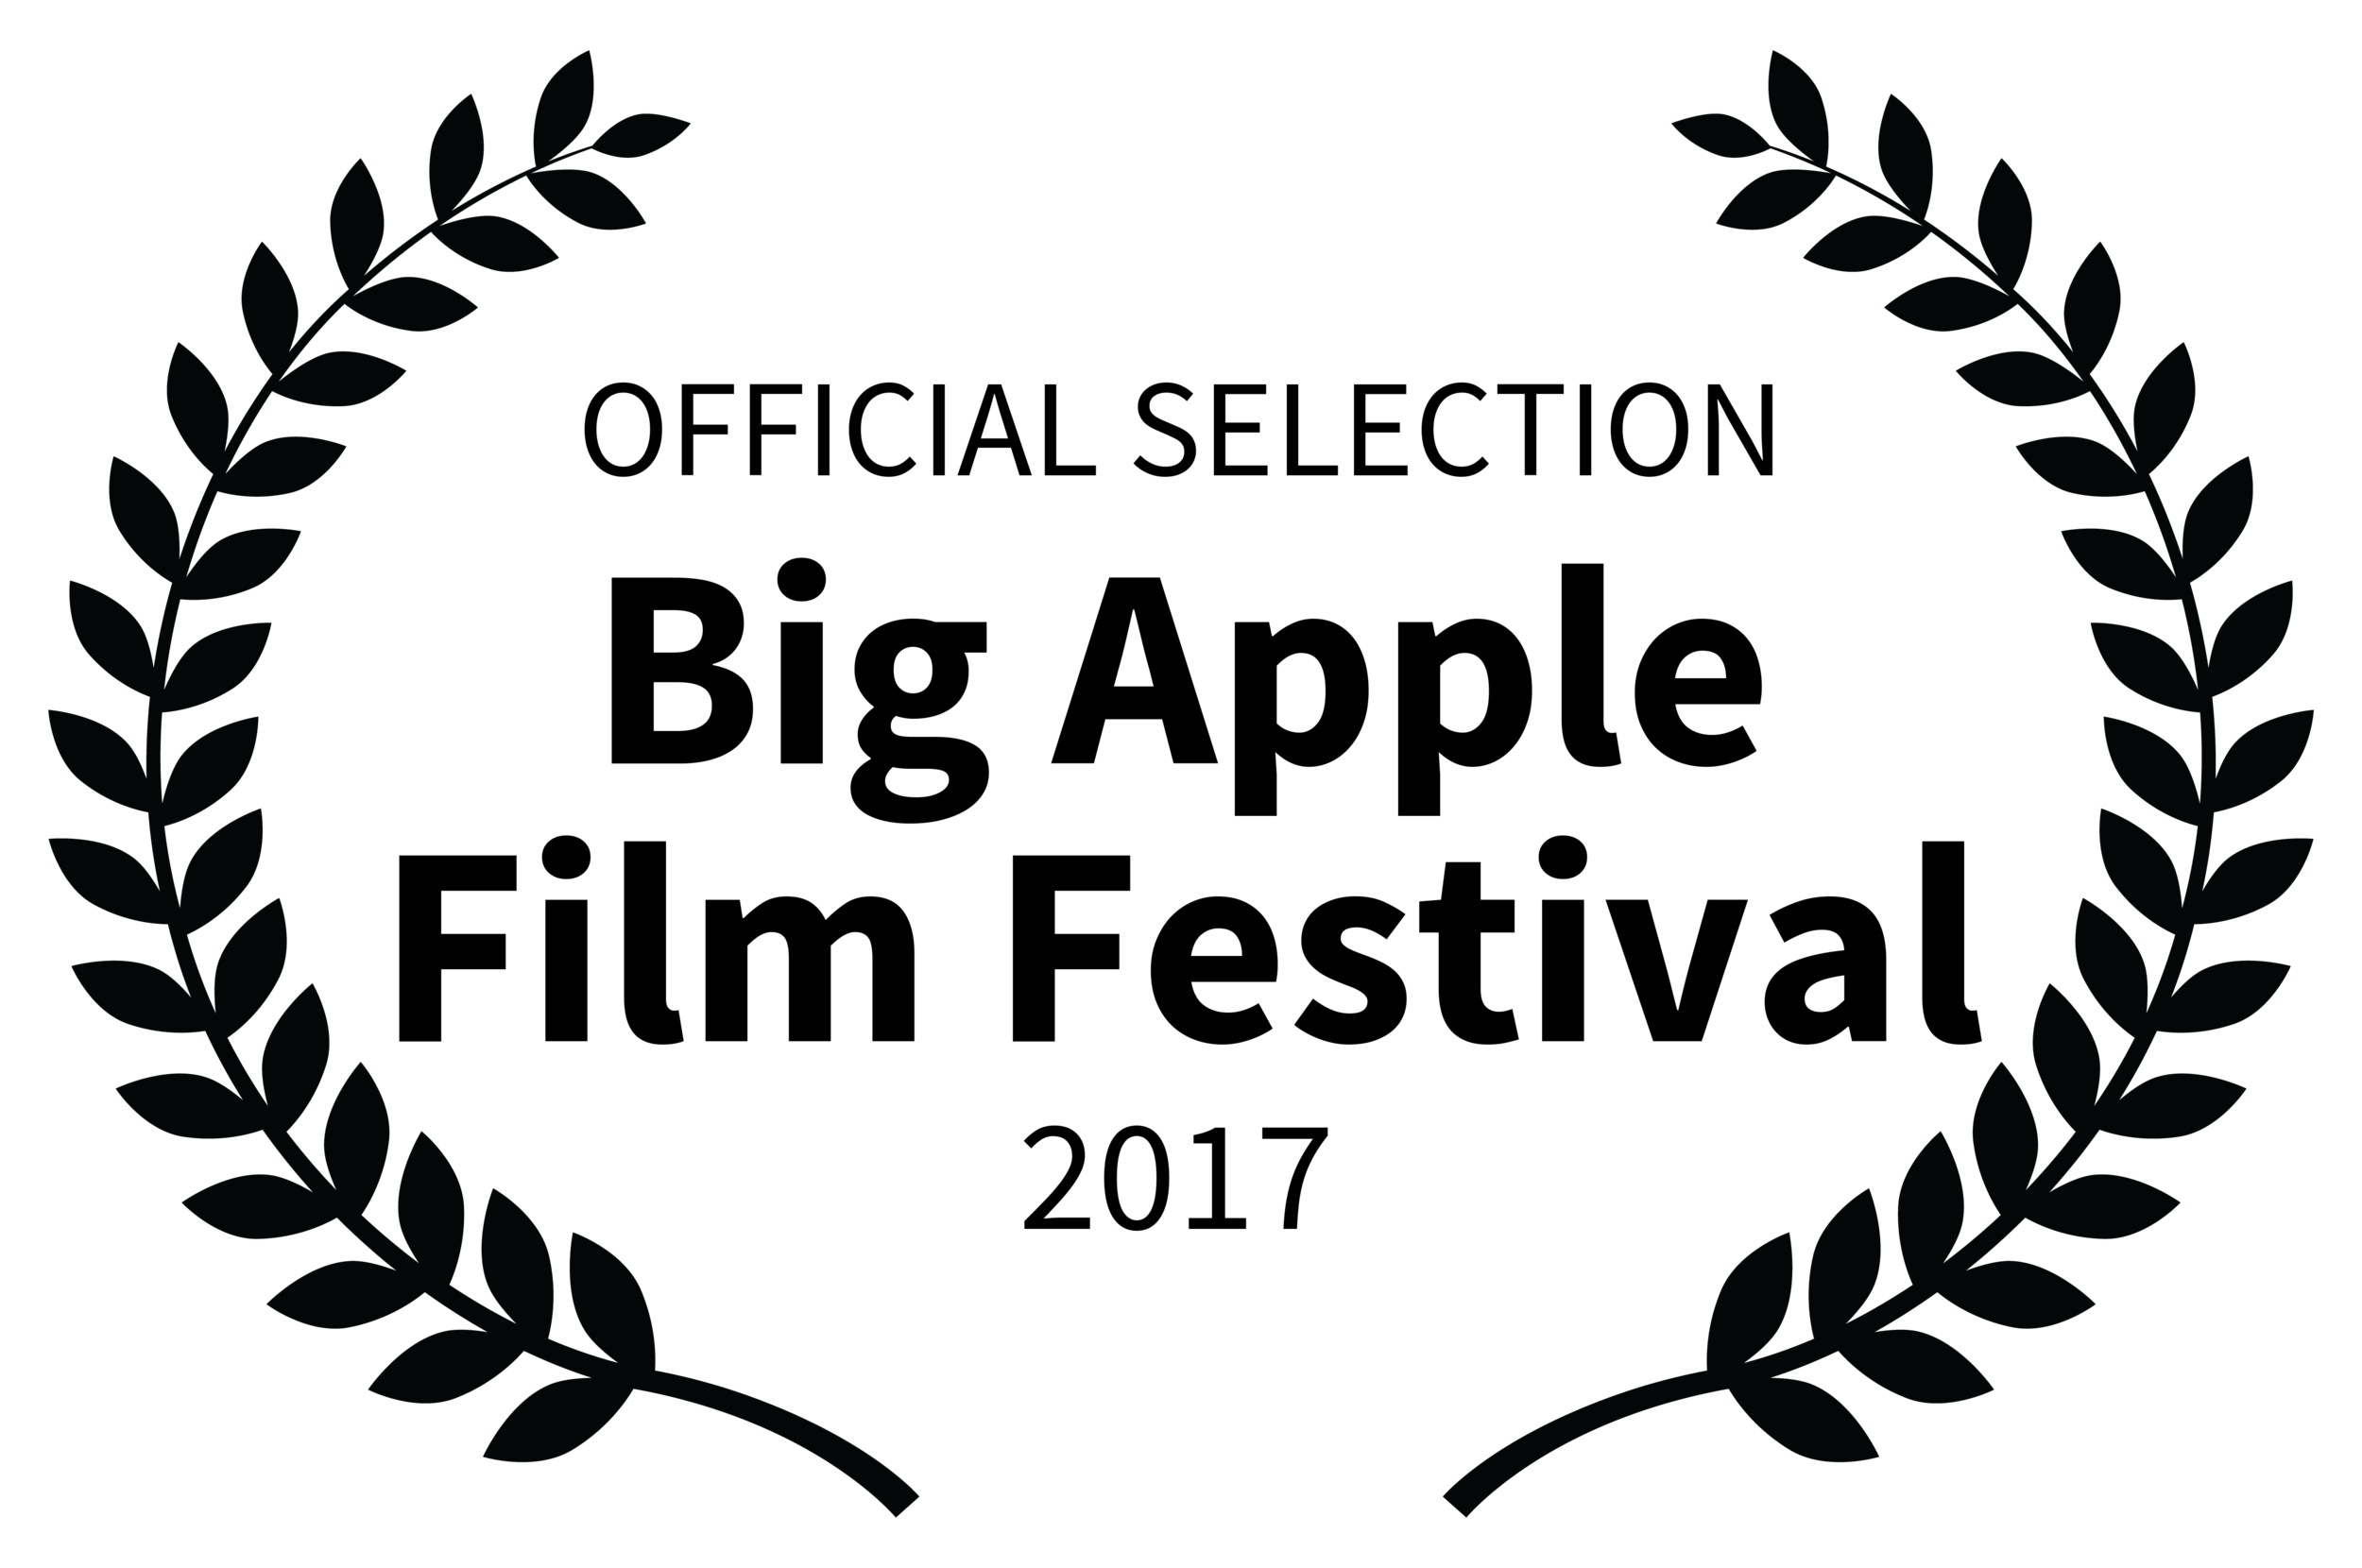 Big Apple Film Festival - Baggage made it's triumphant return to NYC in November 2017 to screen in the exclusive Big Apple Film Festival!